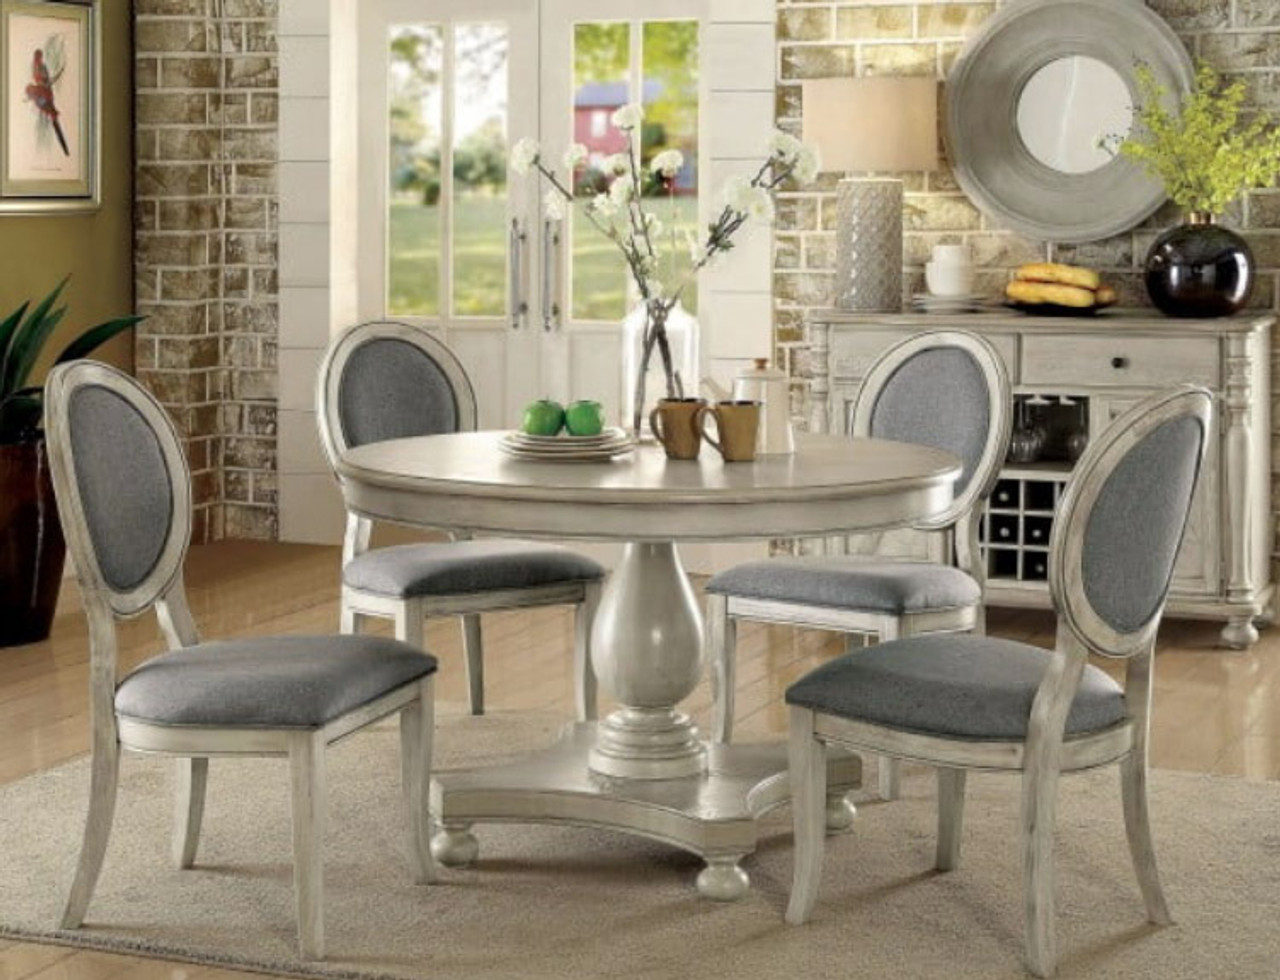 4 Seater Kathryn Antique White Round Dining Table